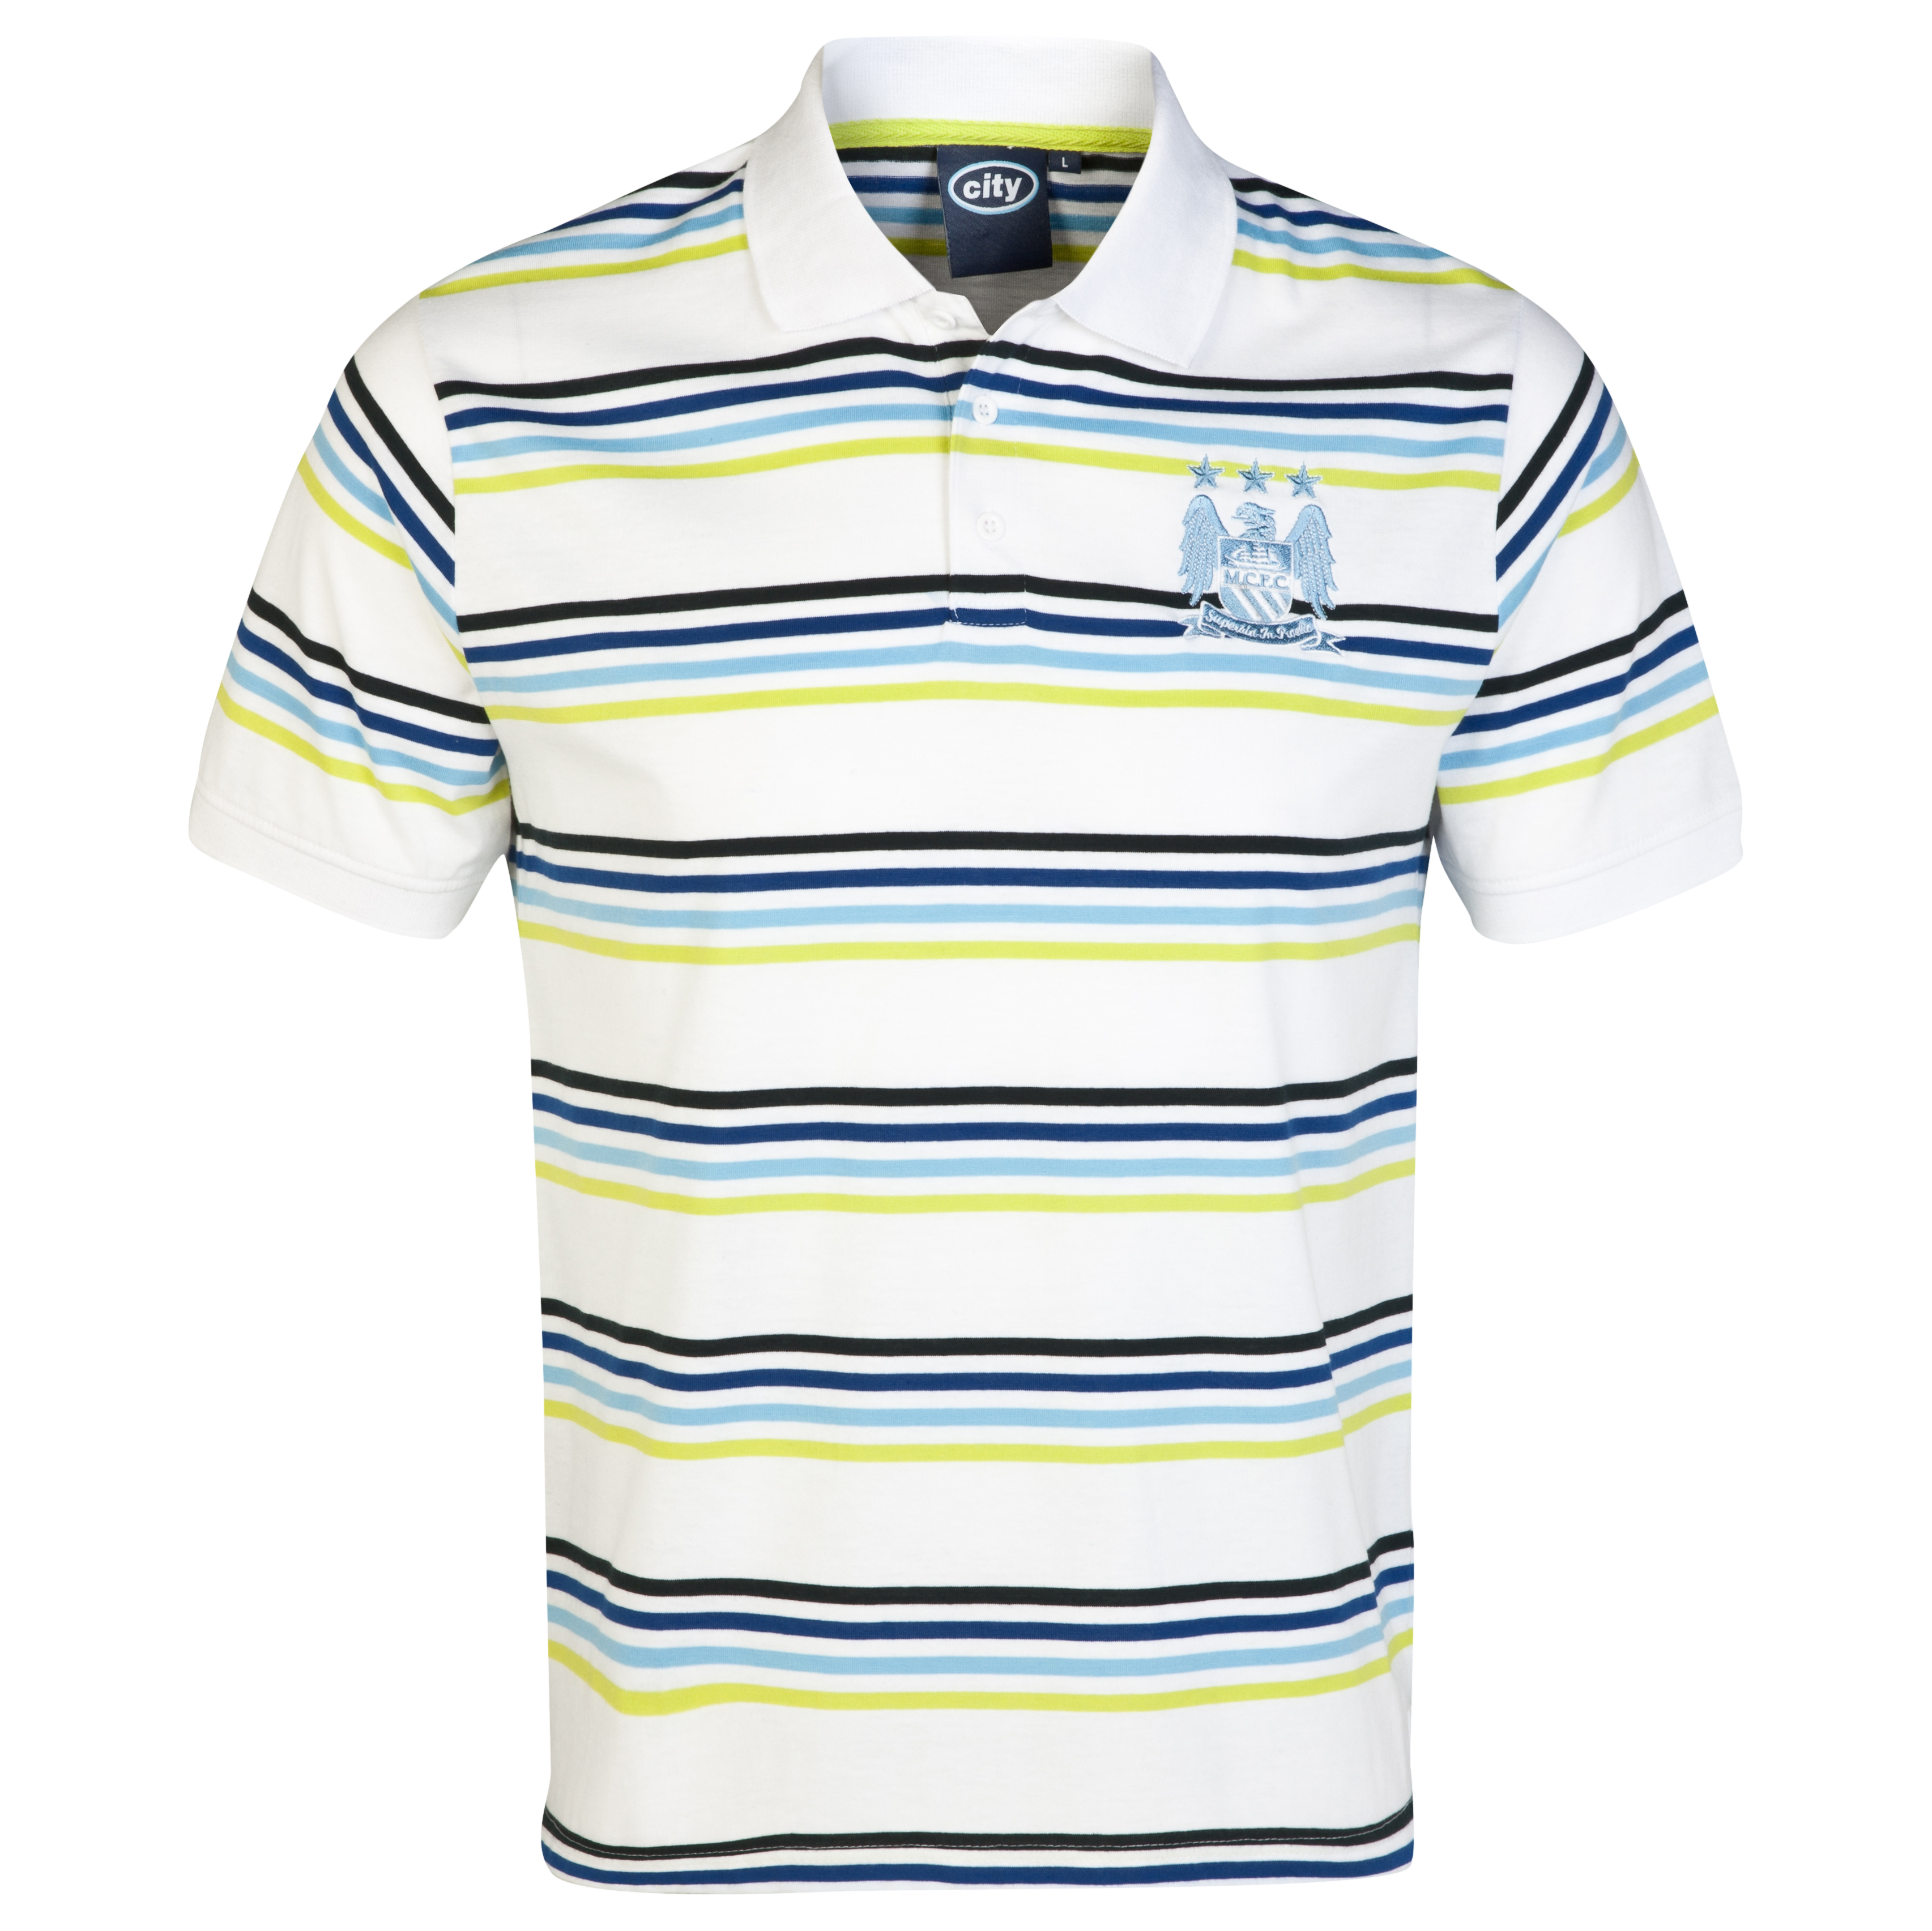 Manchester City Essential Vivid Polo Shirt-Older Boys White